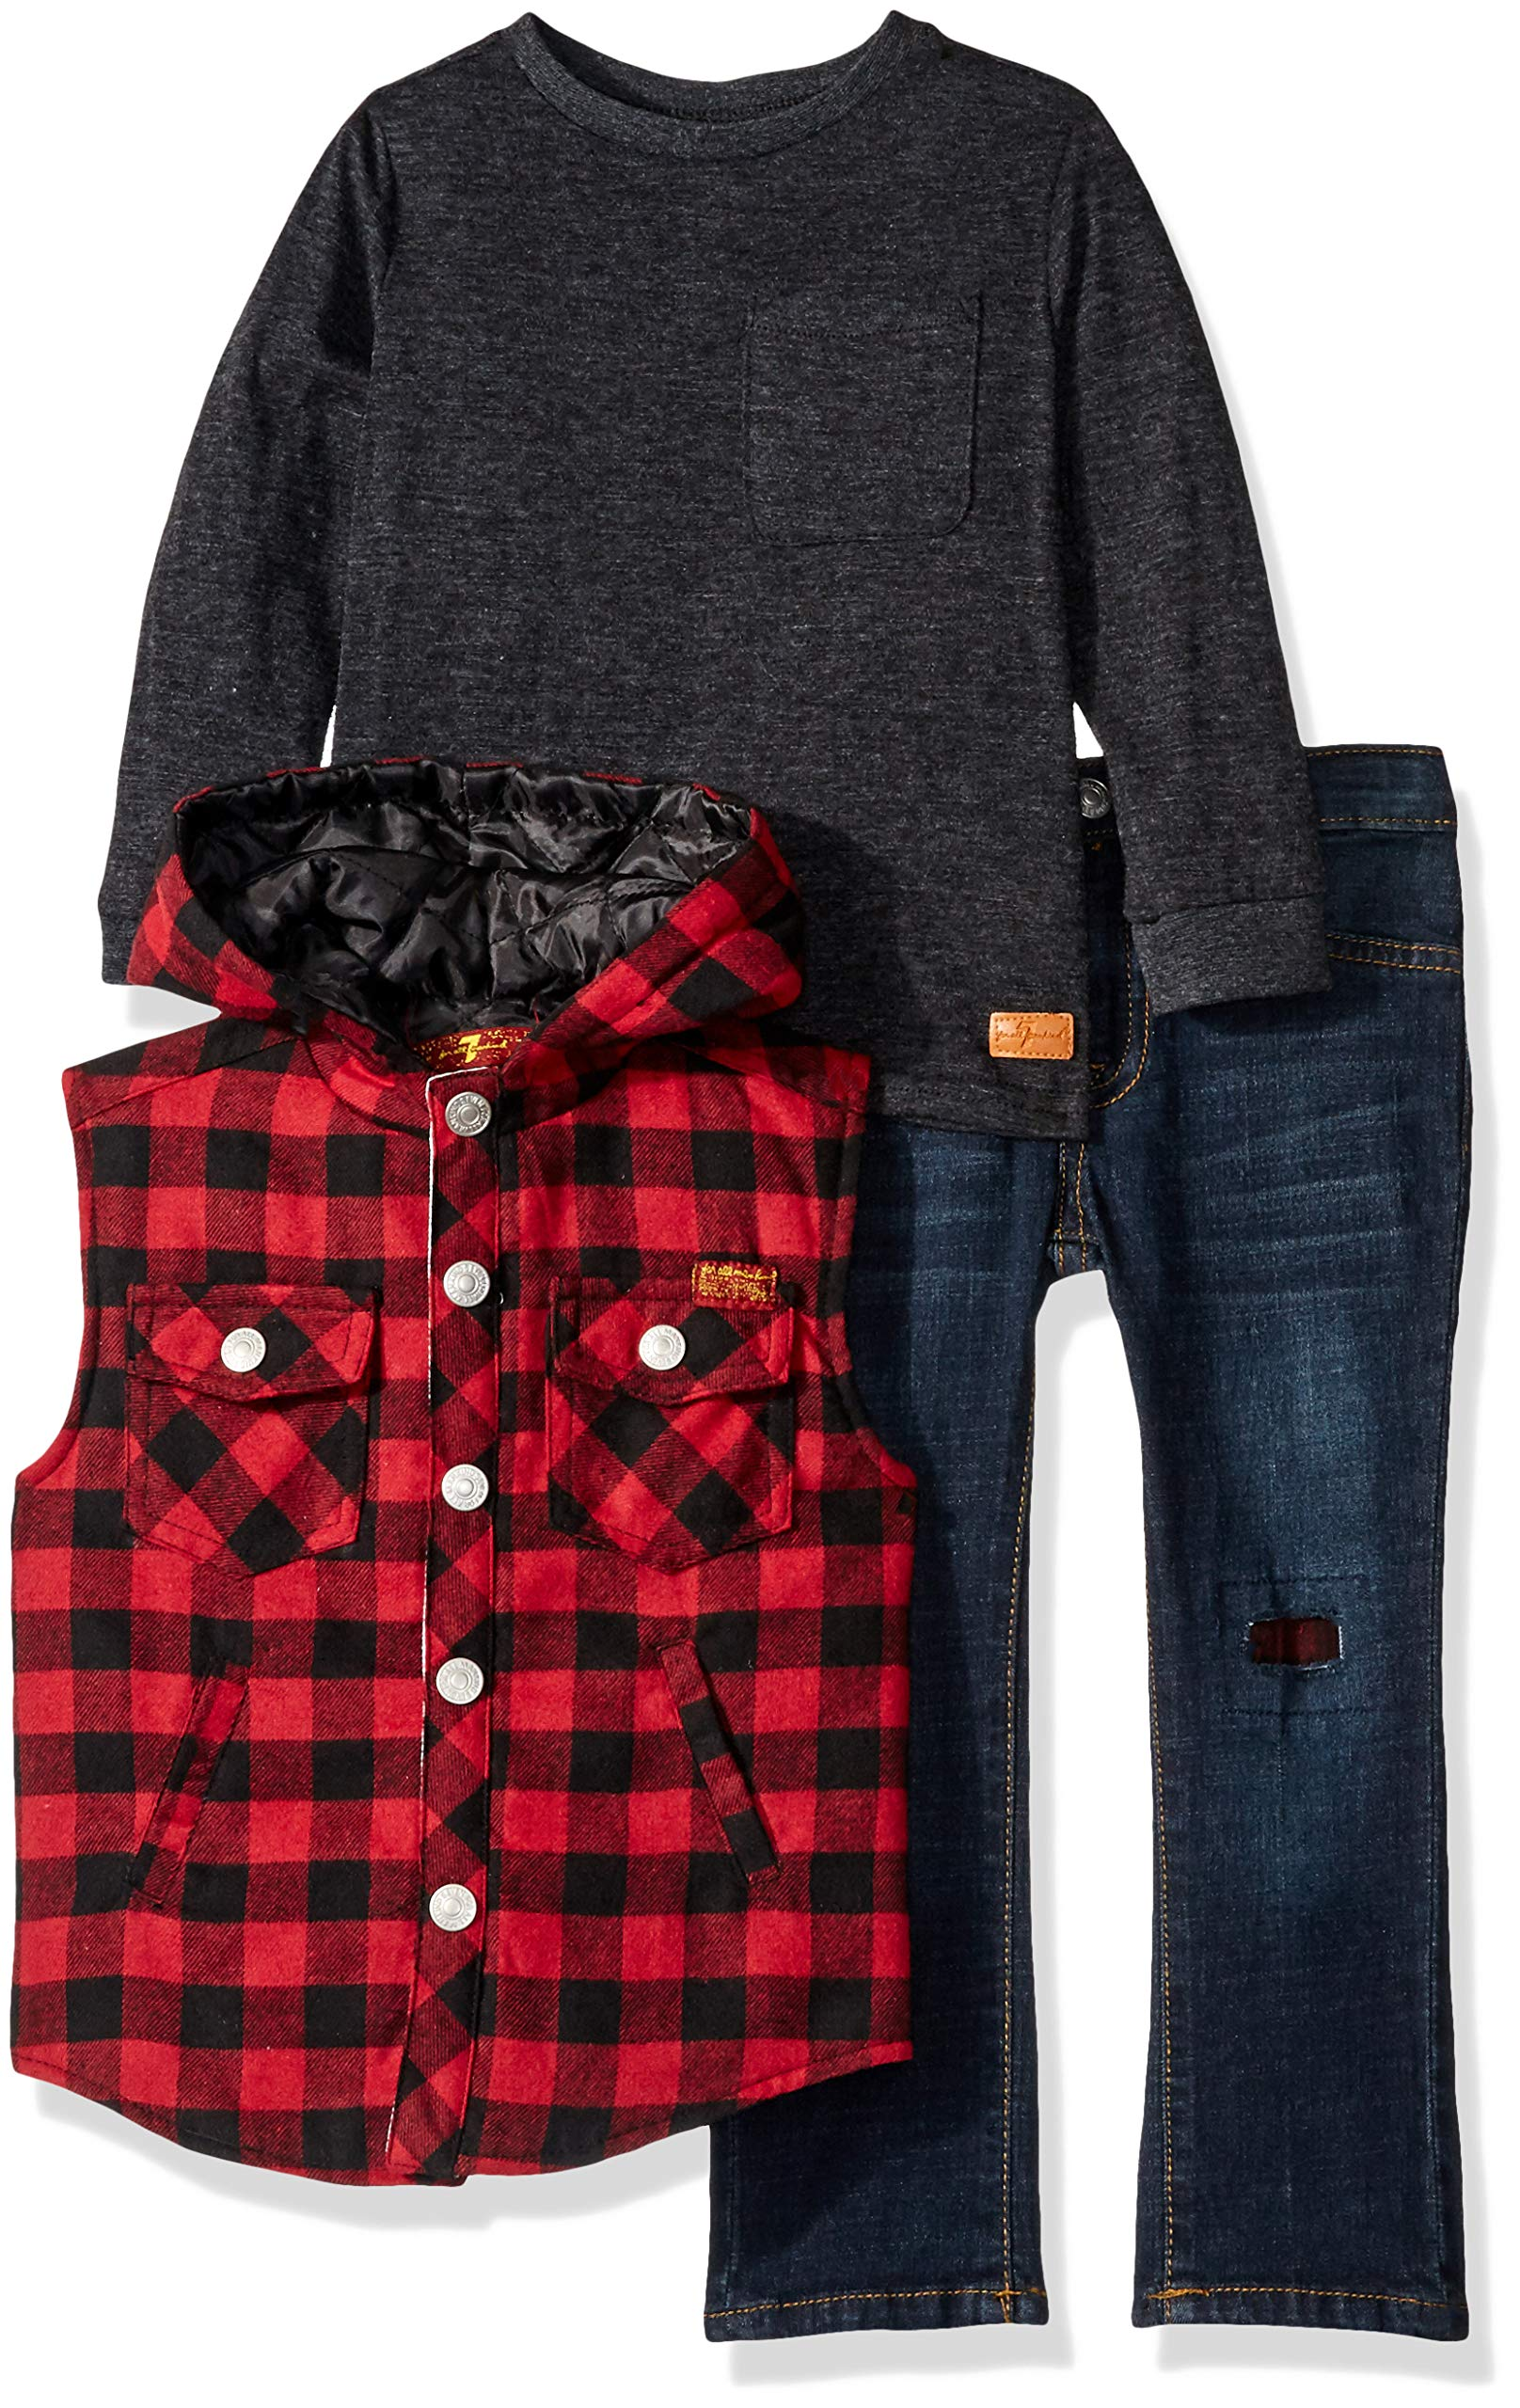 7 For All Mankind Boys' Toddler Flannel Vest, Long Sleeve Shirt and Jean Set